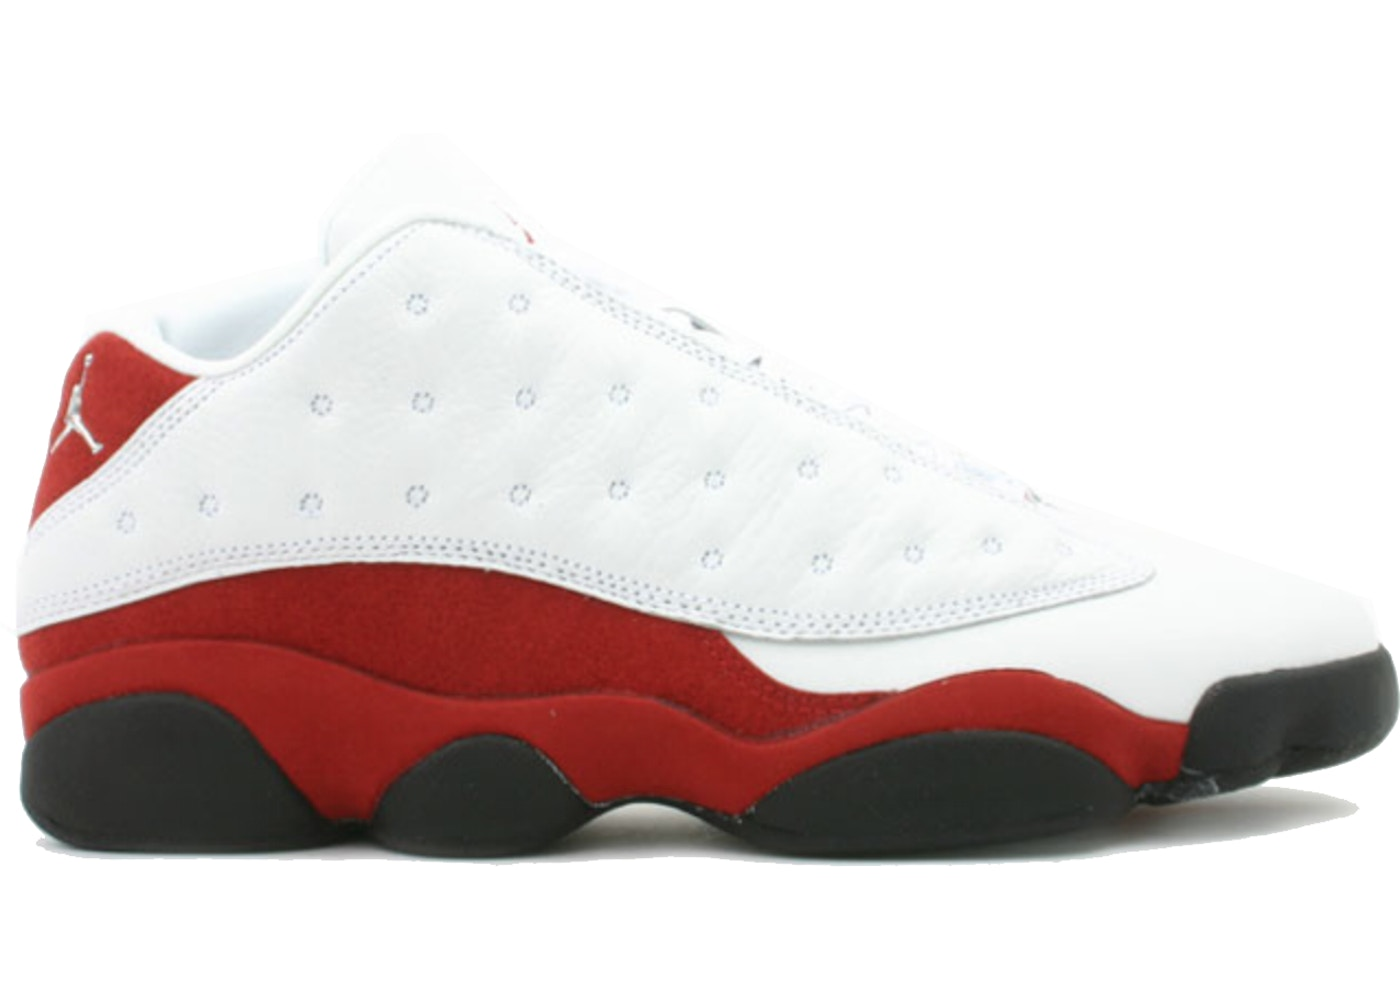 8efc220538b Jordan 13 Retro Low Cherry (2005) - 310810-105